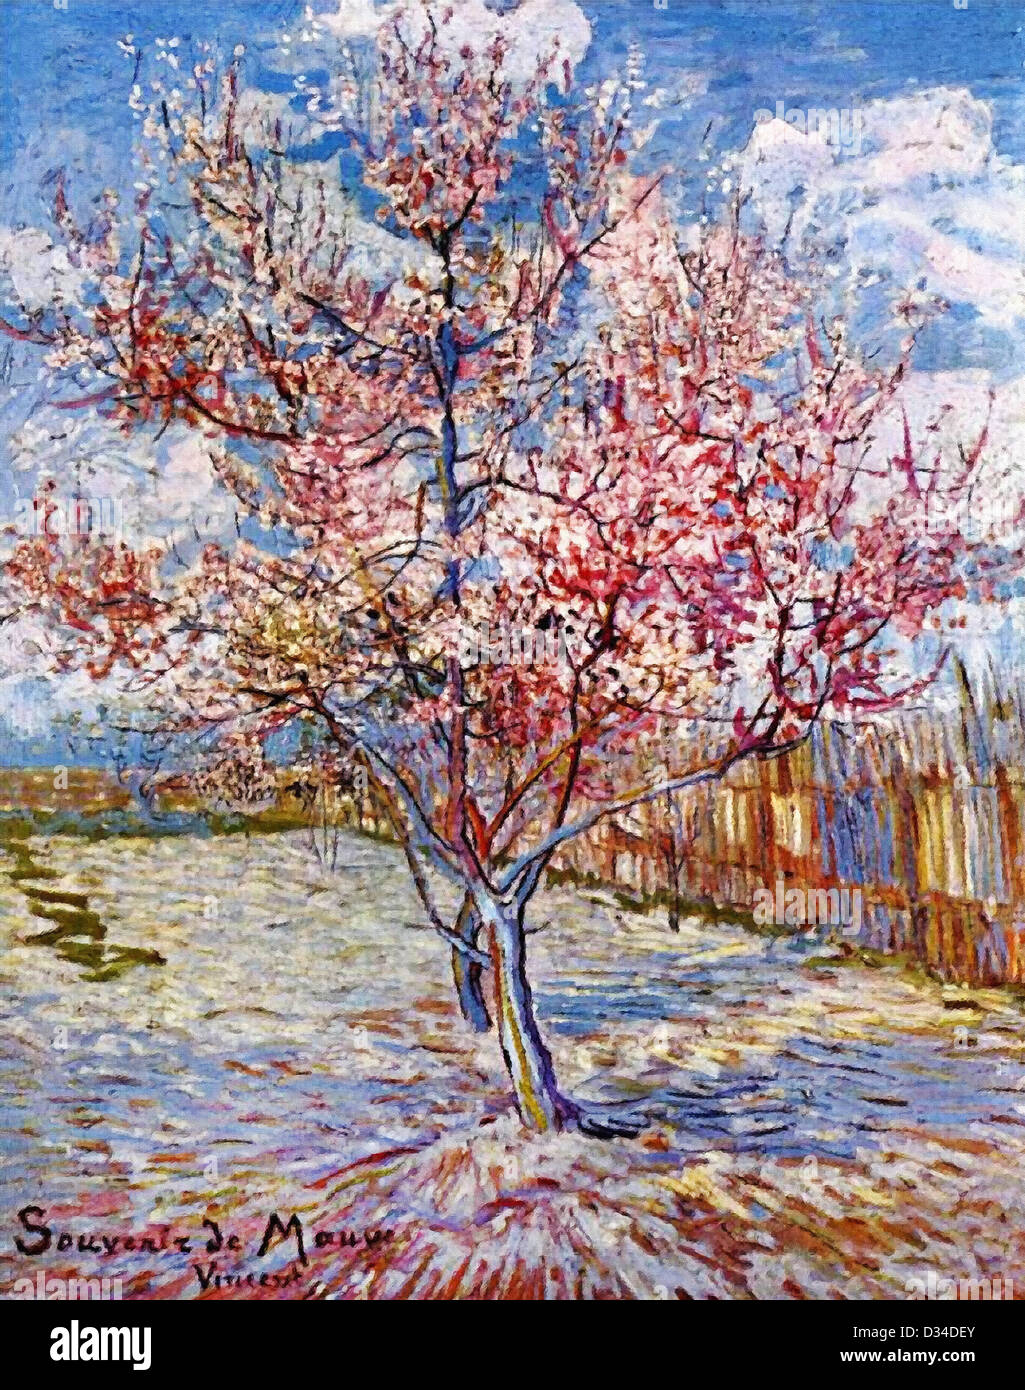 Vincent van Gogh: Peach Tree in Bloom (in memory of Mauve). 1888. Oil on canvas. Rijksmuseum Kröller-Müller, - Stock Image